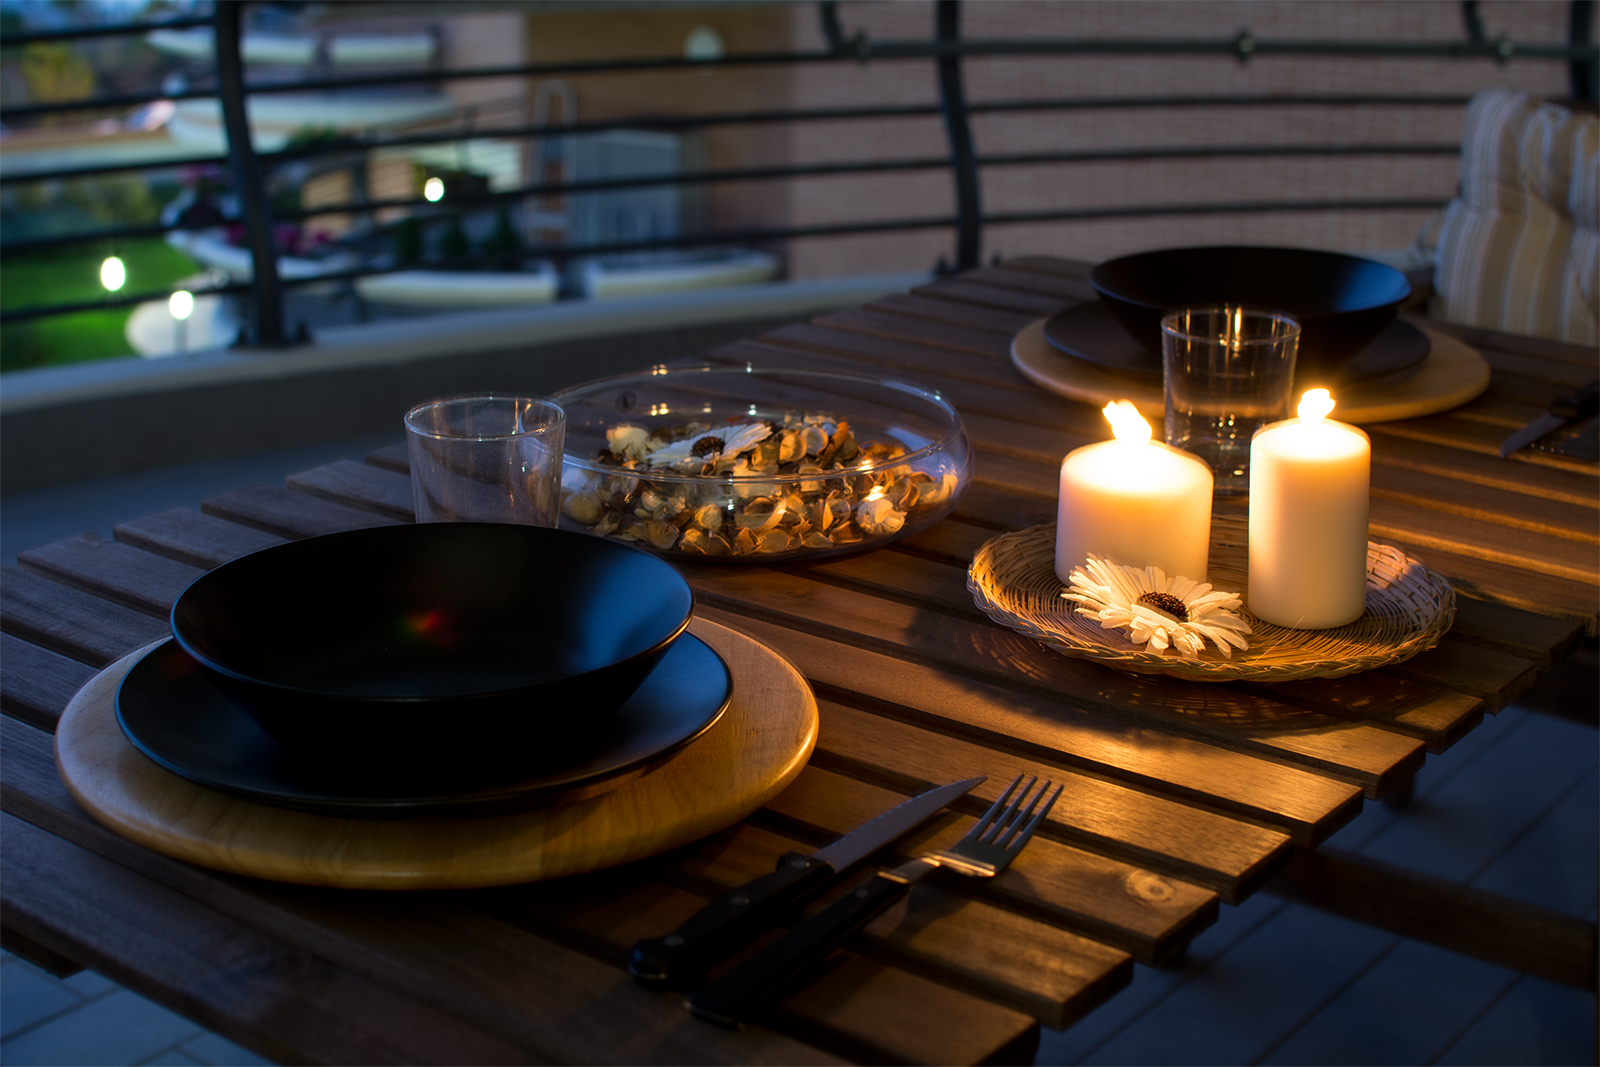 Enjoy a relaxing dinner in the large terrace, the perfect antidote to a day spent in the city